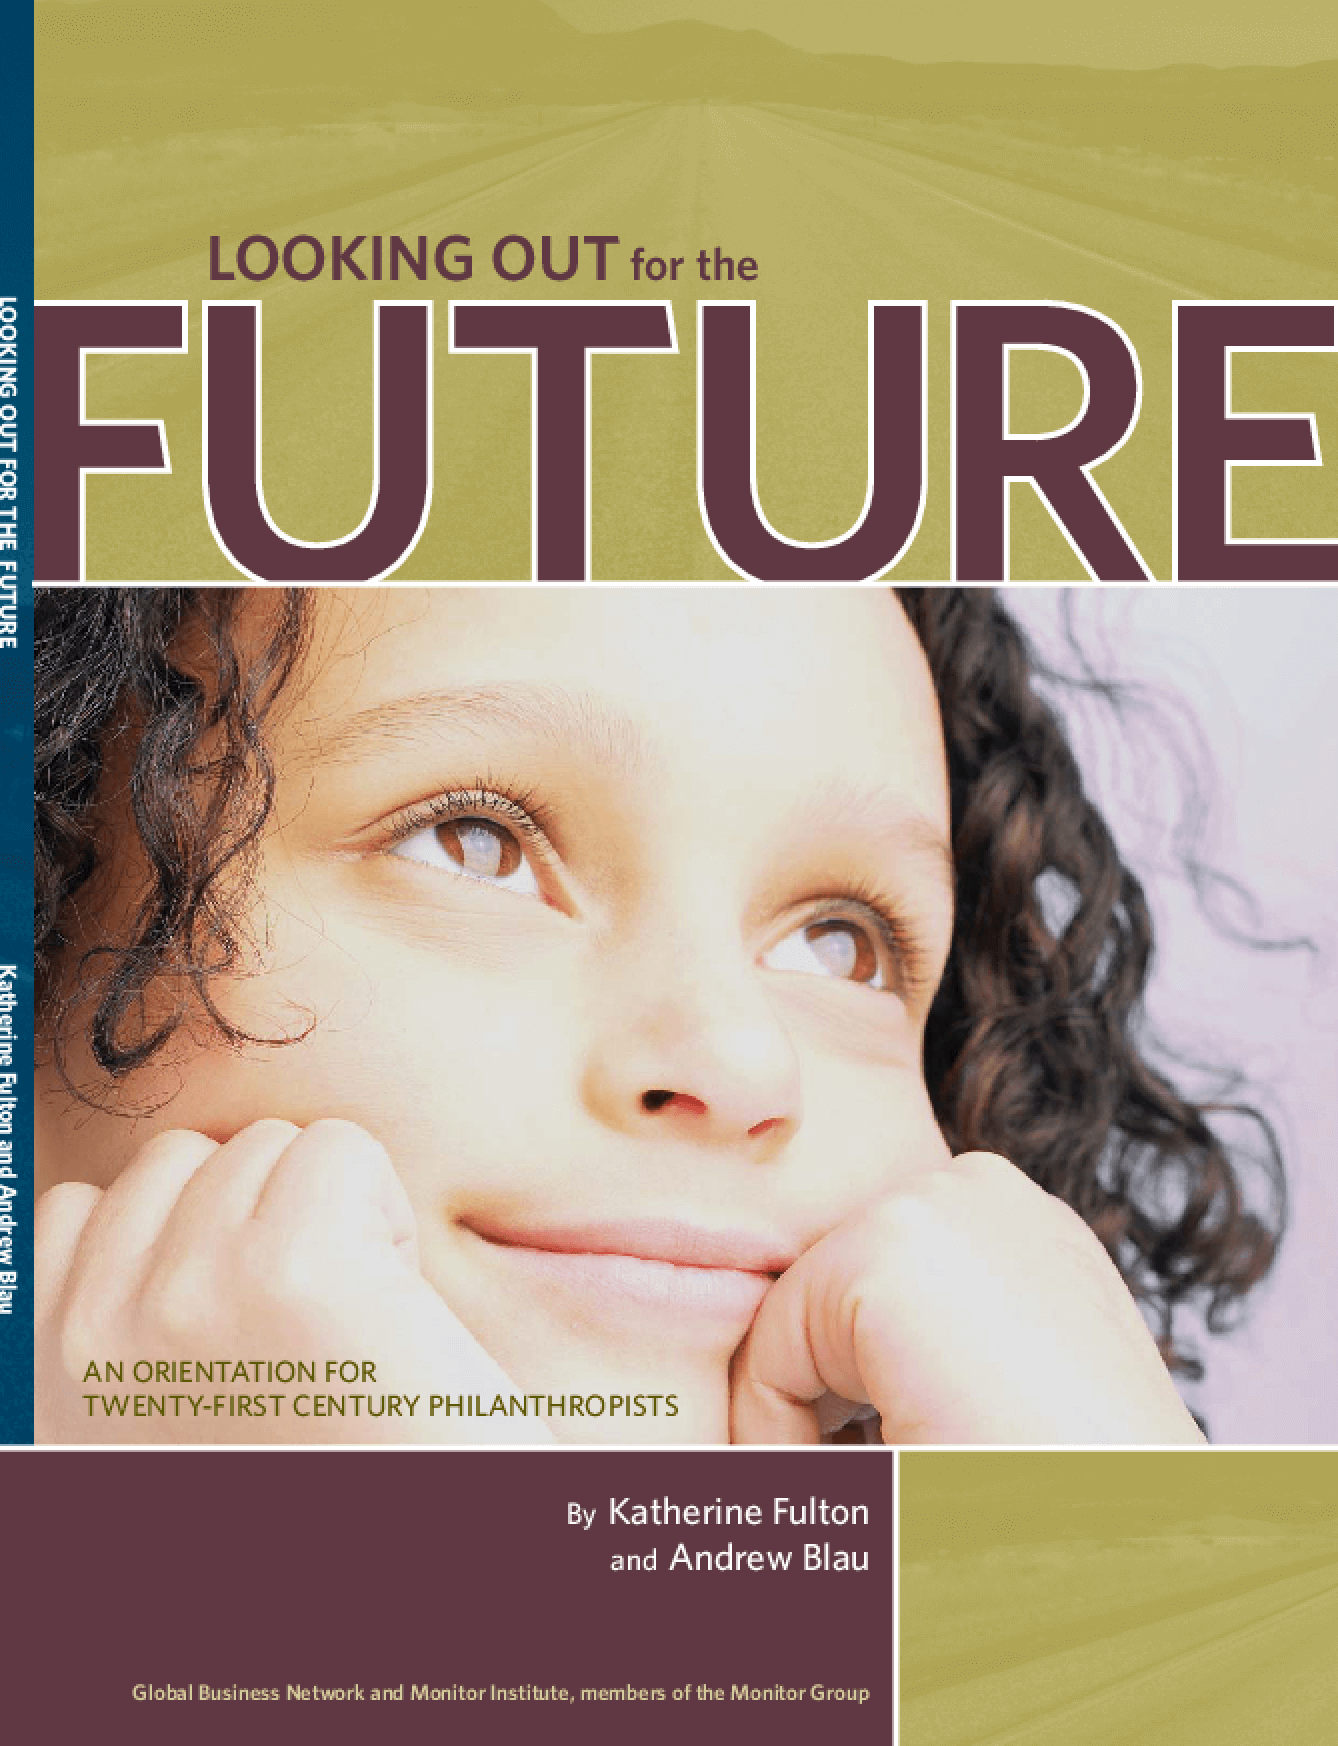 Looking Out for the Future: An Orientation for Twenty-first Century Philanthropists